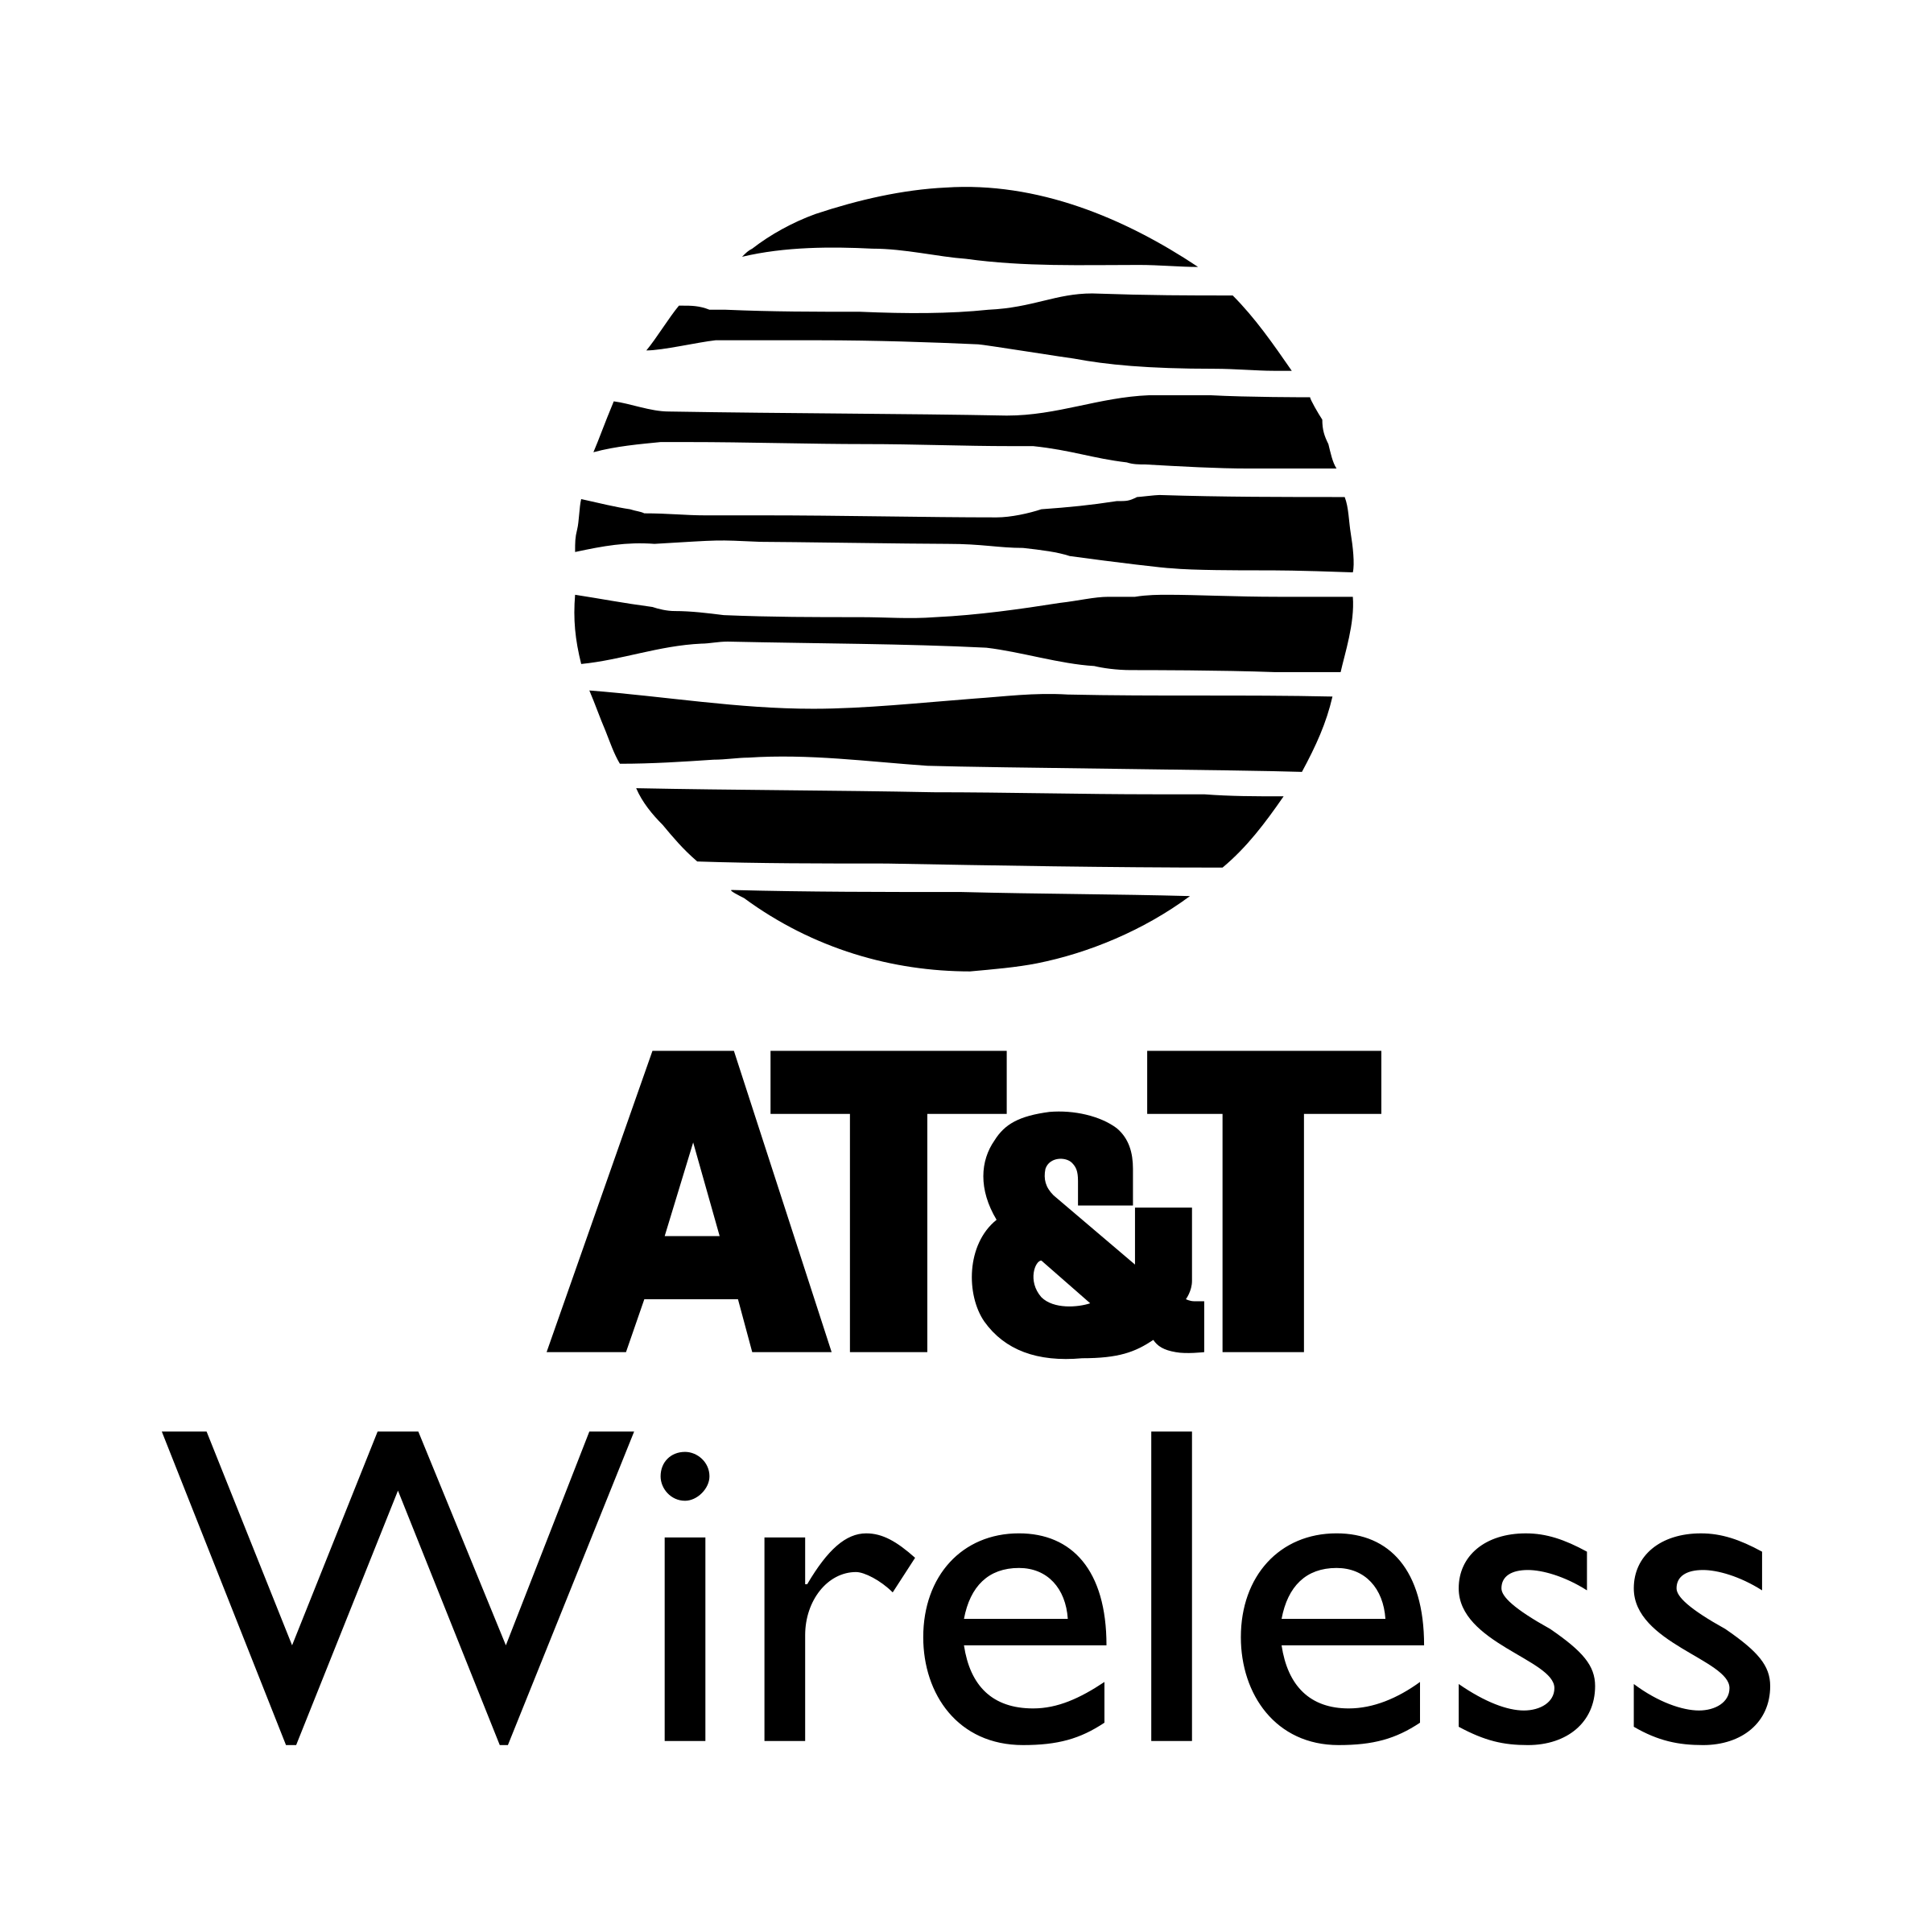 At&t wireless logo png. At t transparent svg